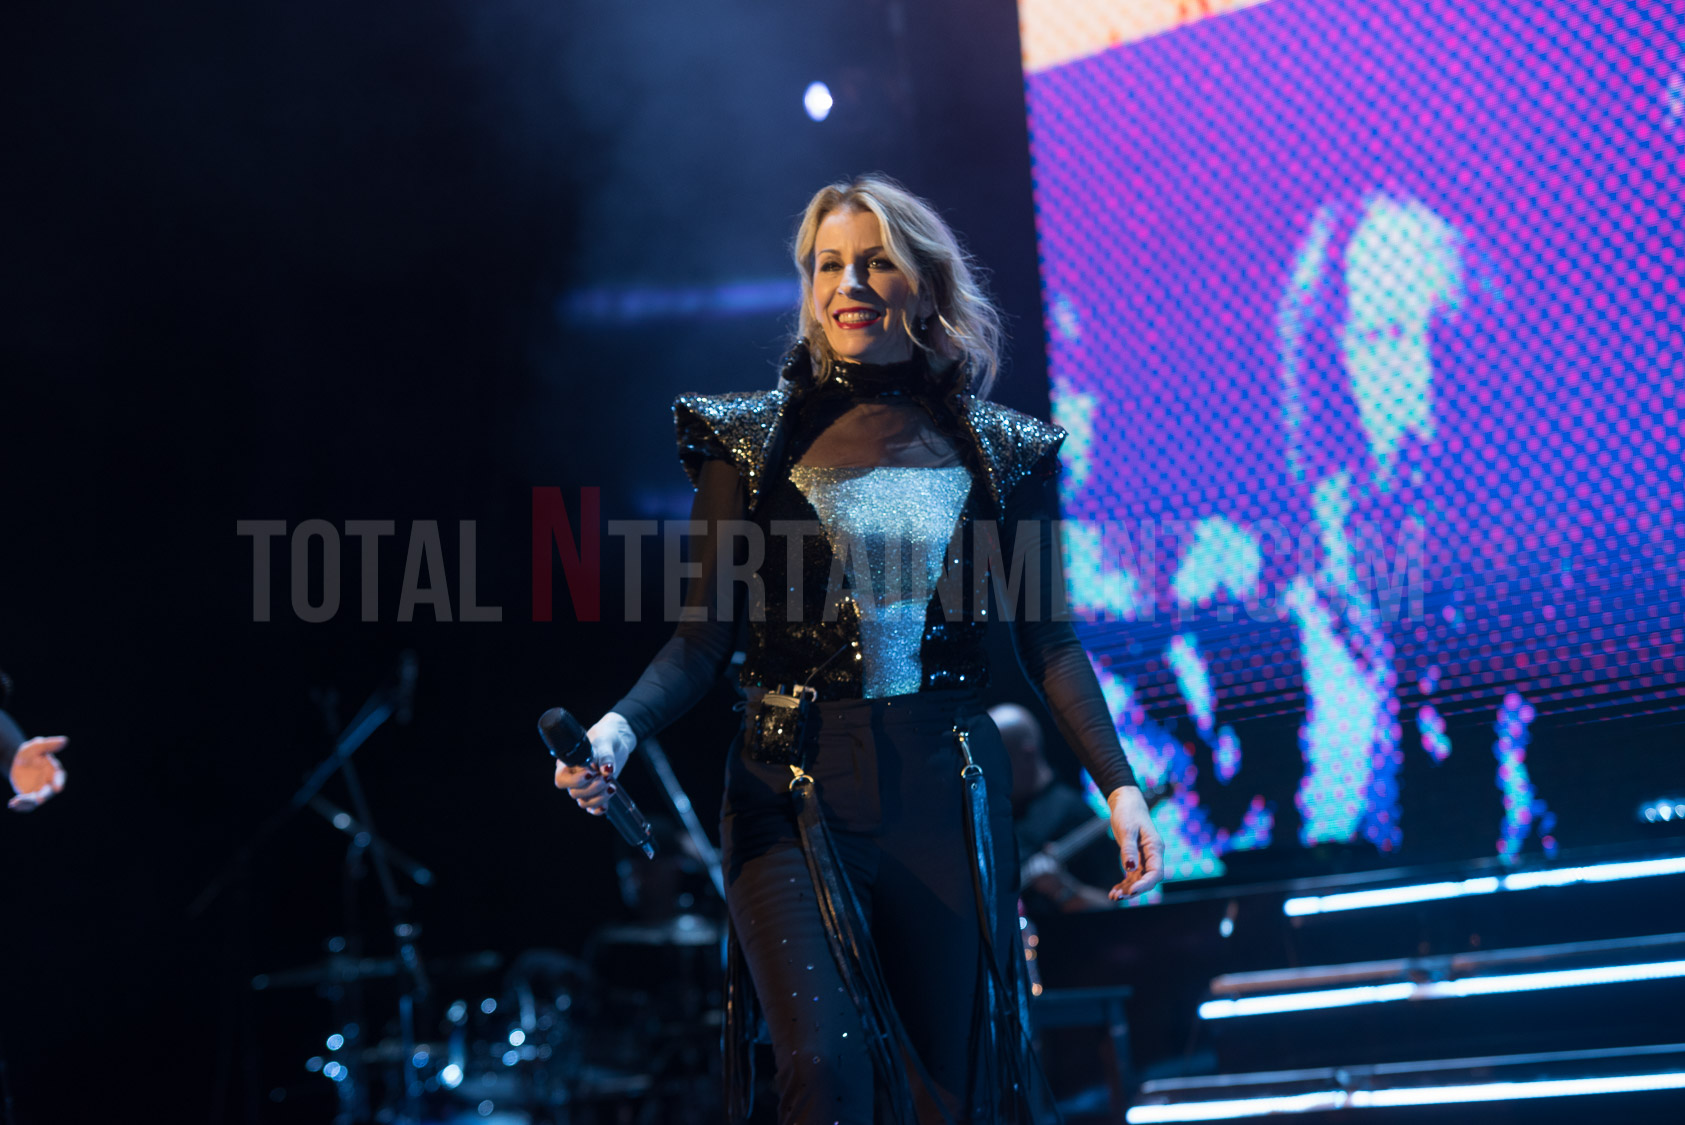 Bananarama bring some '80s pop glamour to the York Barbican